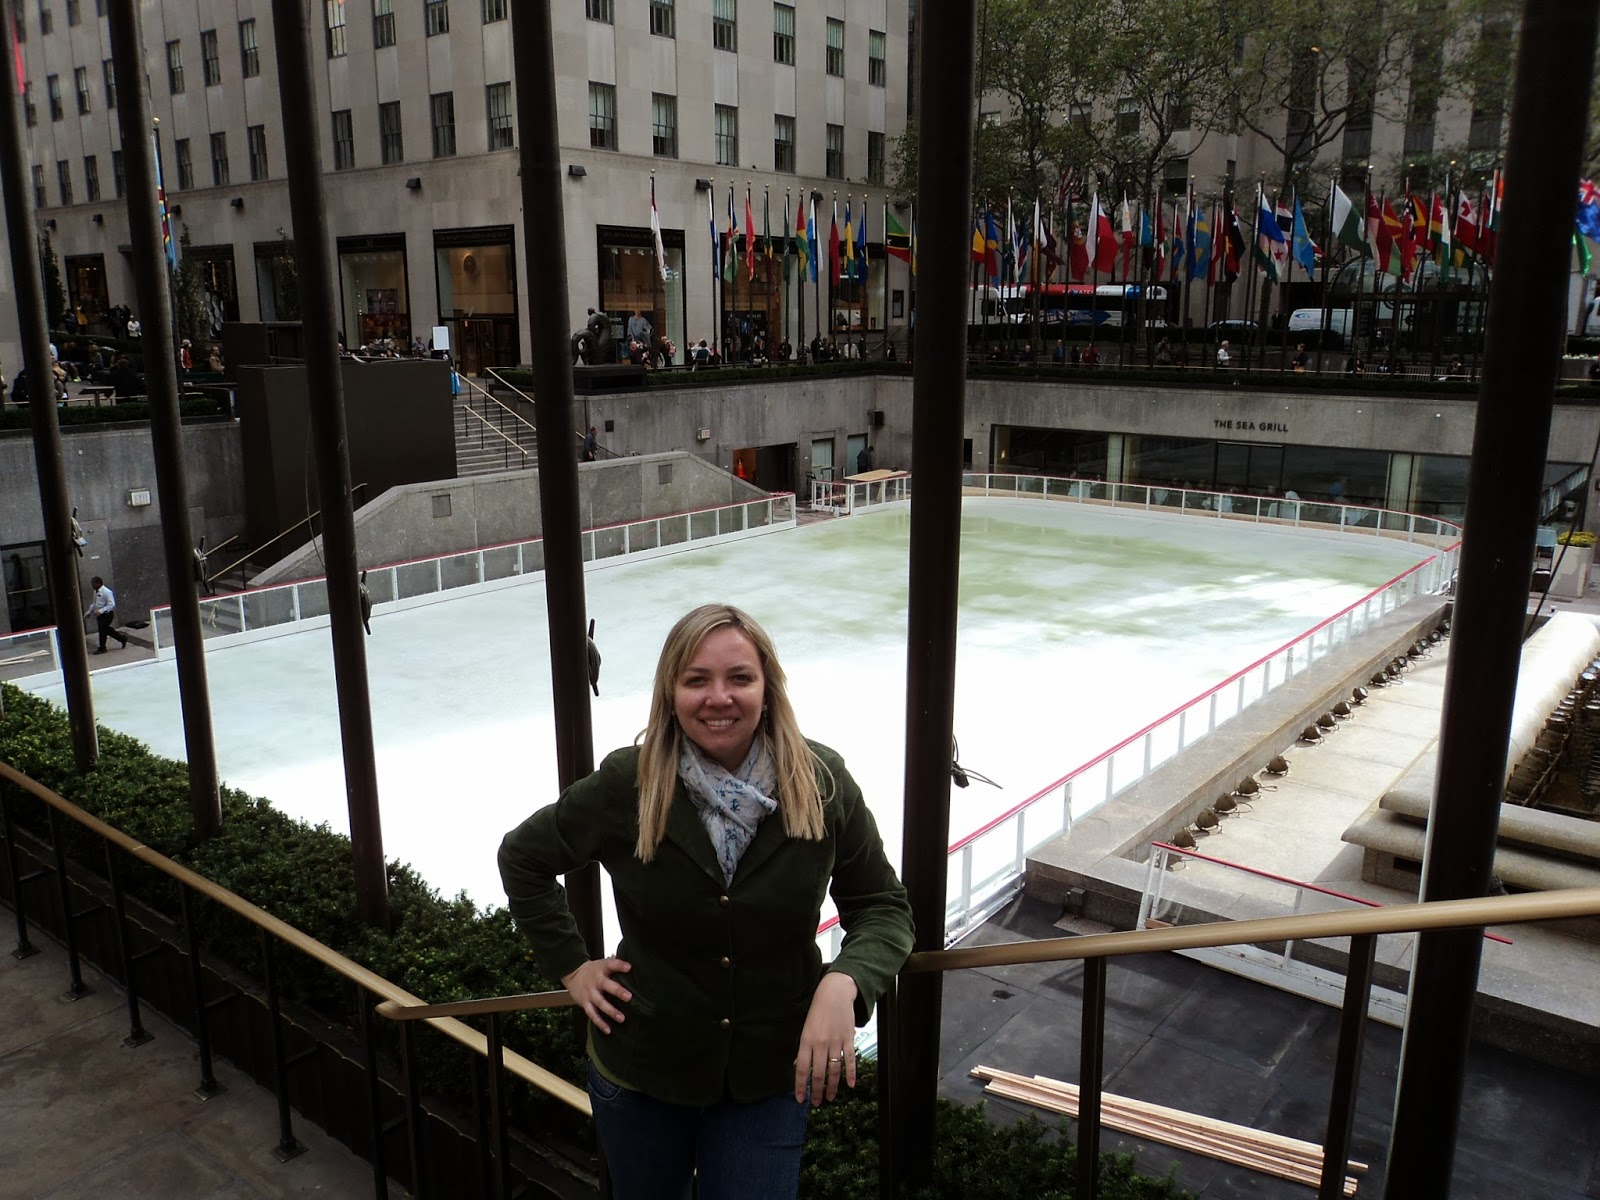 Rockfeller Center - Nova York